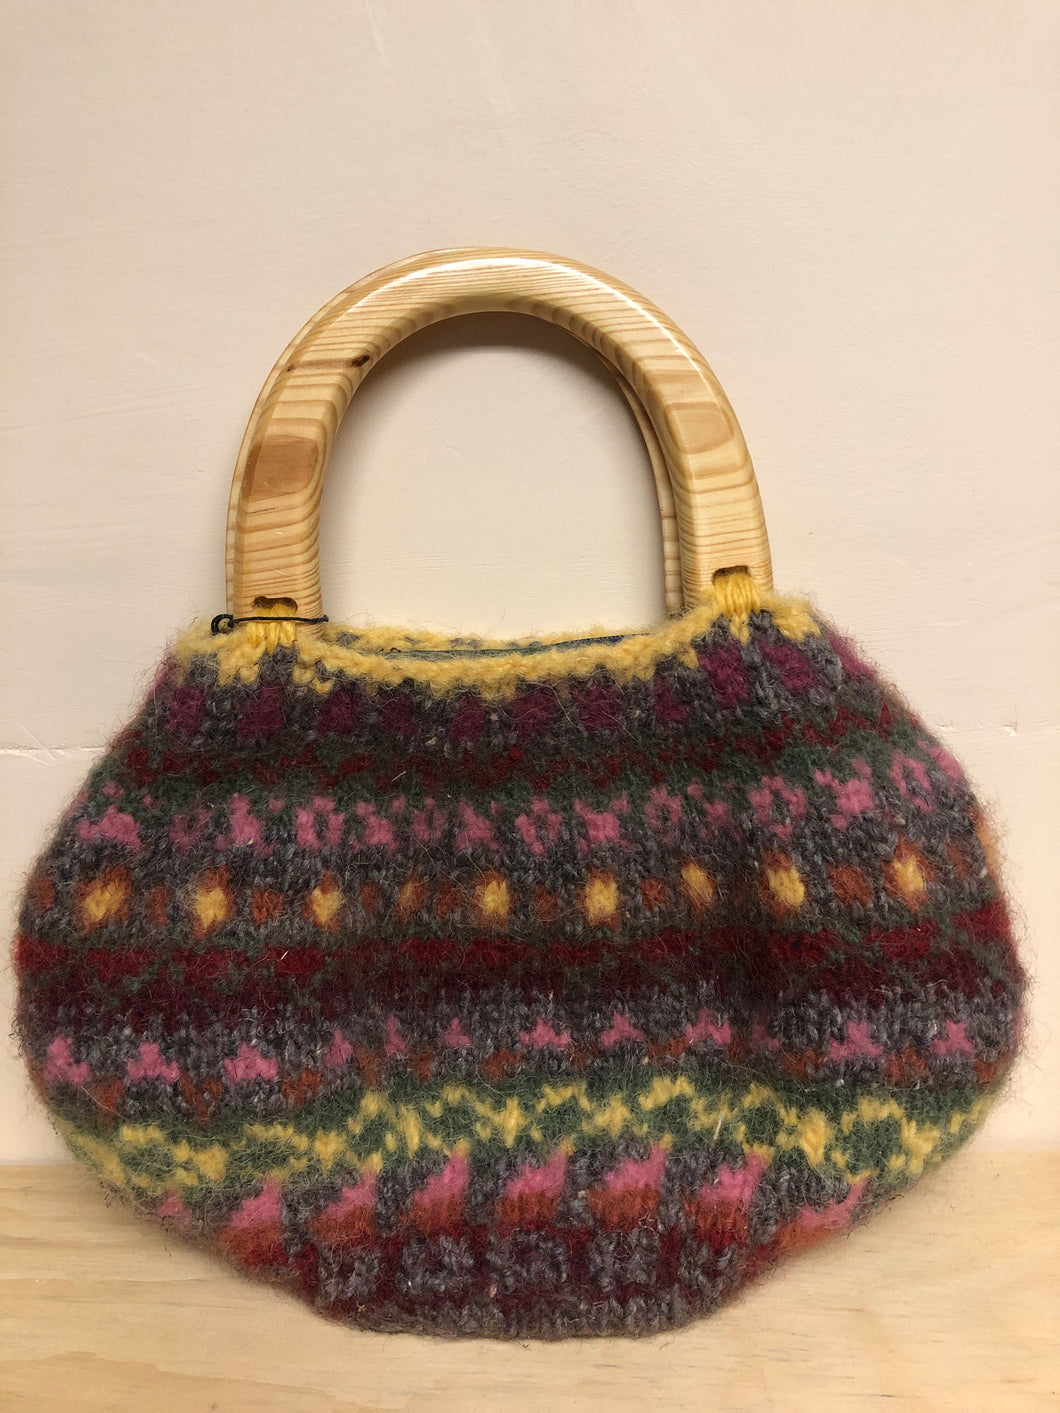 Hand bag, lined and zips closed